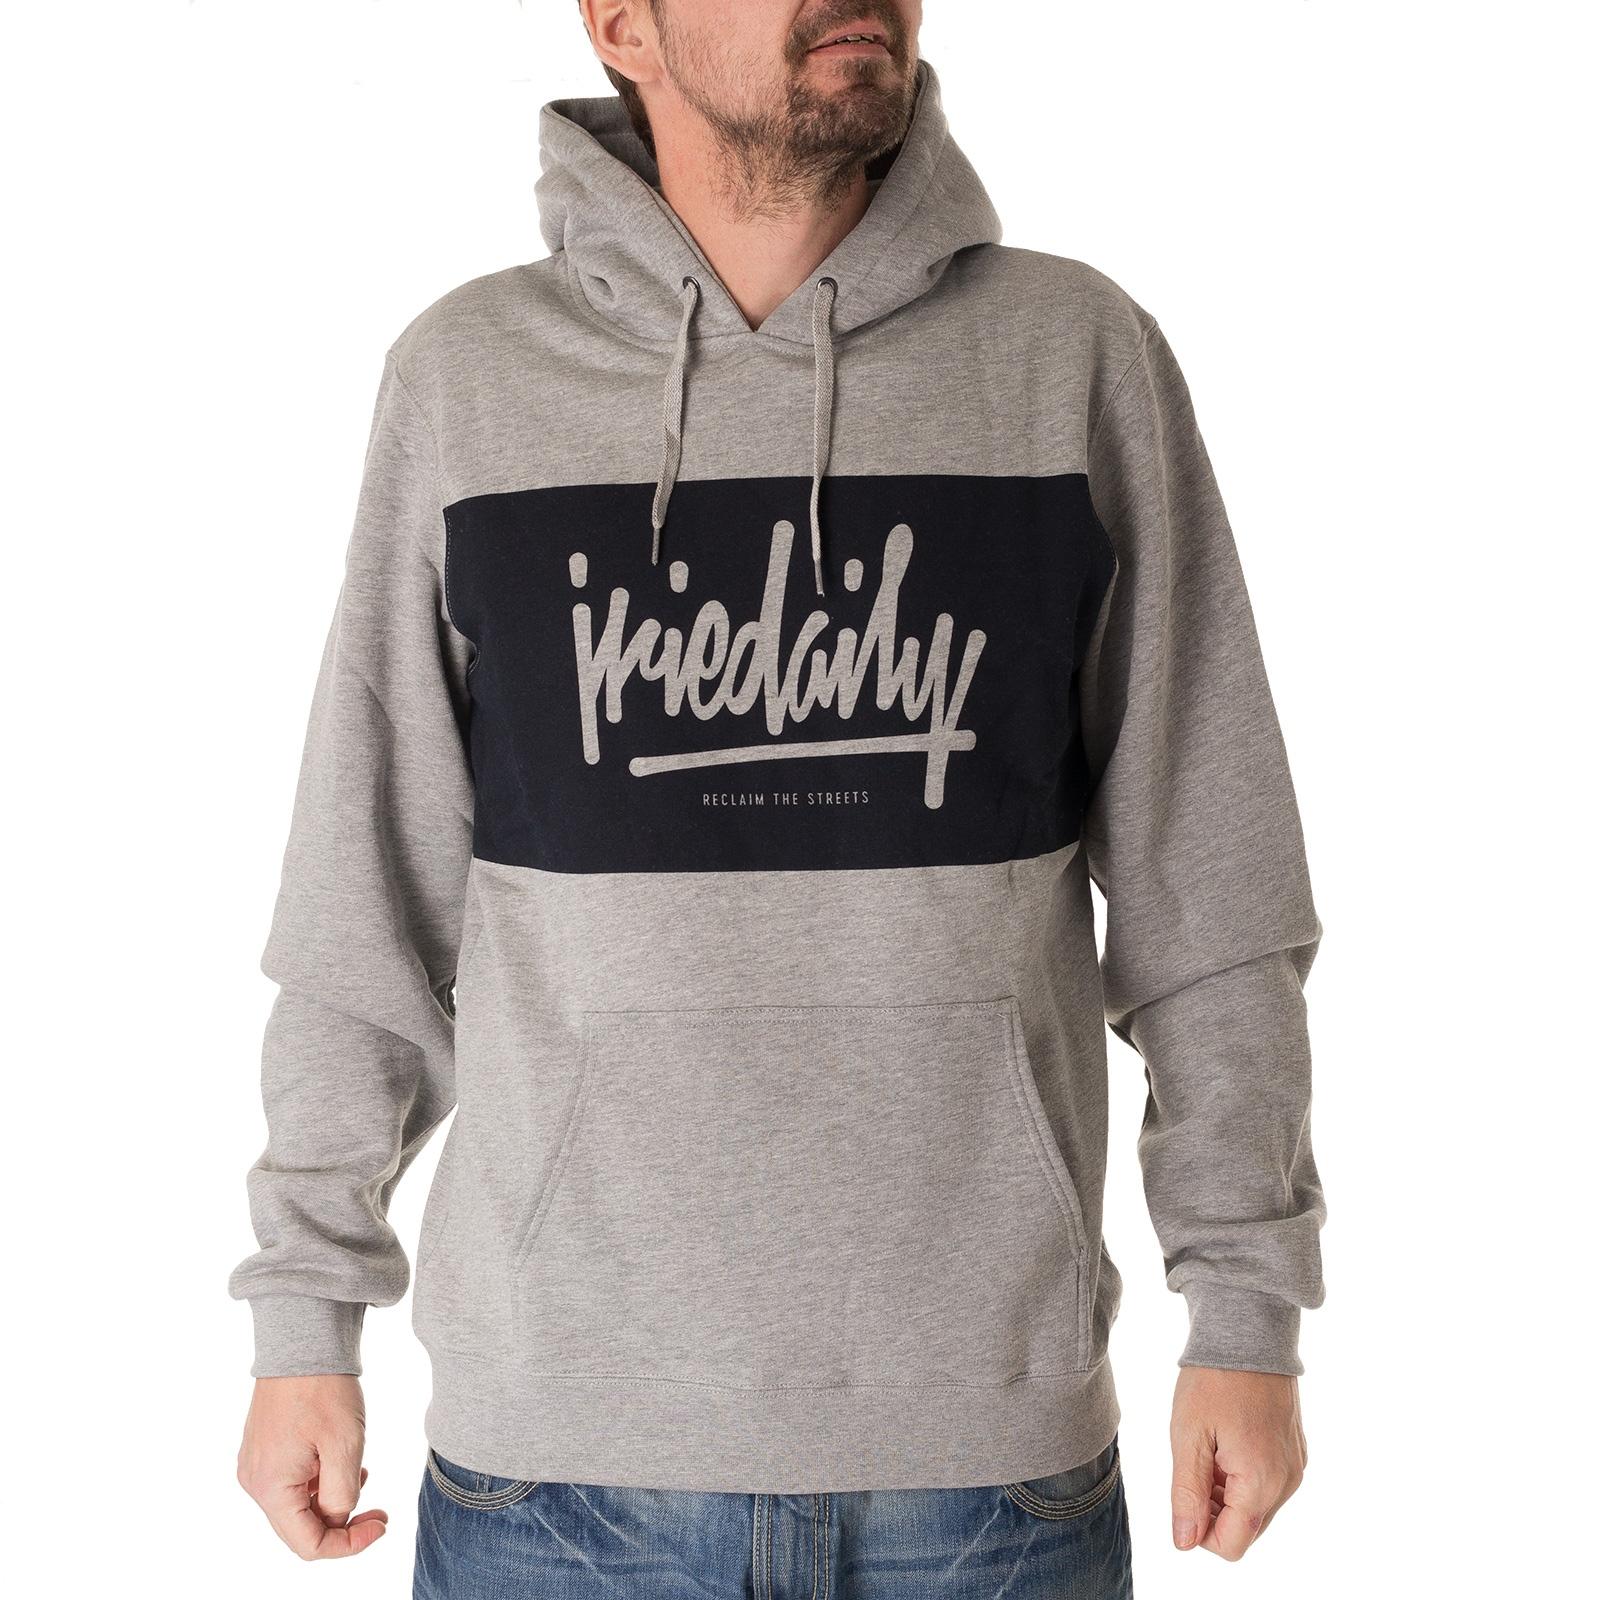 Iriedaily Tagg Tagg Tagg Hooded Hoodie Herren Kapuzenpullover 33484 1fac98